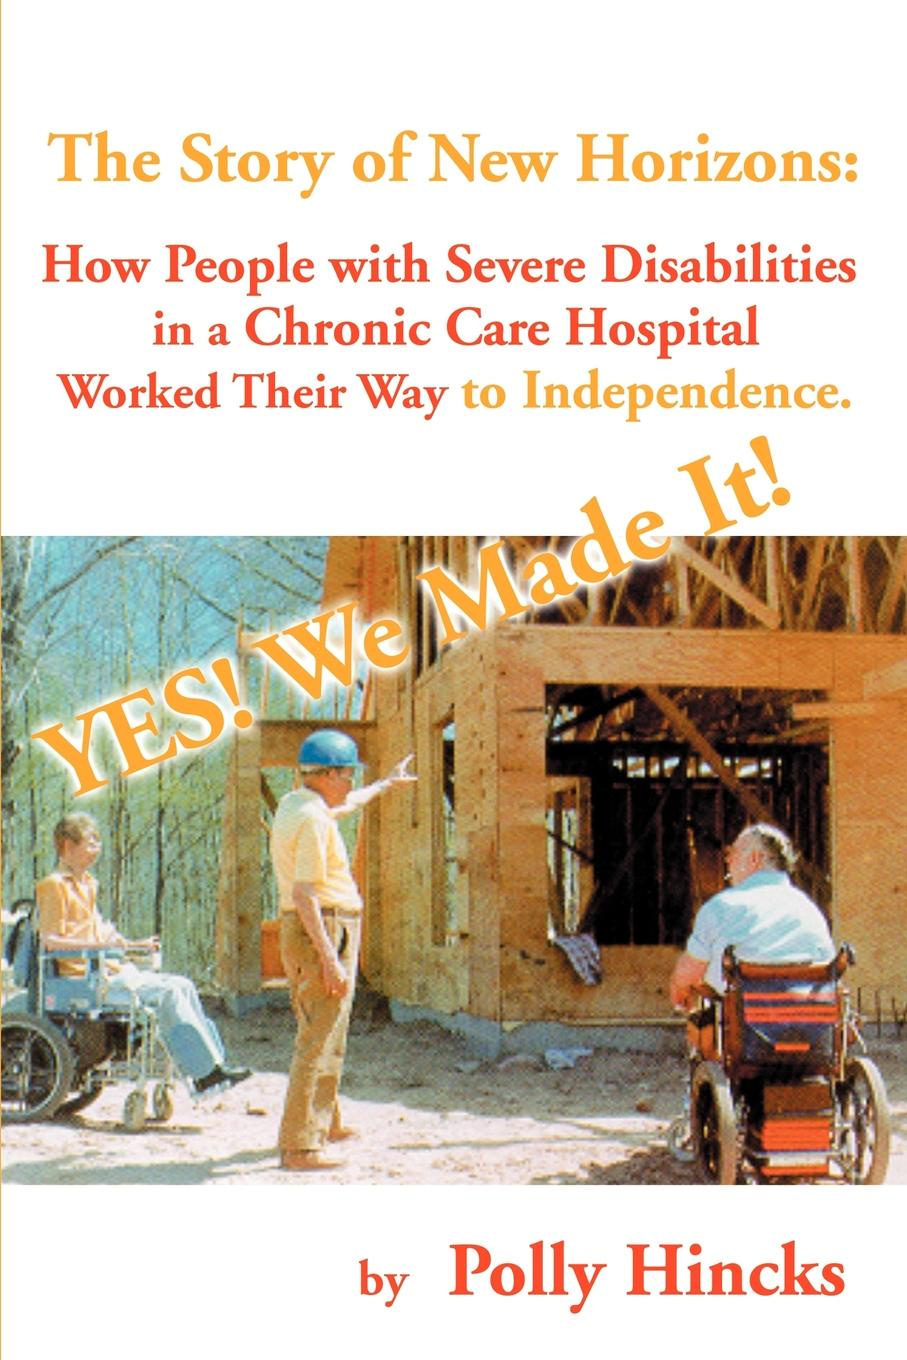 Polly Hincks Yes! We Made It! The Story of New Horizons. How People with Severe Disabilities in a Chronic Care Hospital Worked Their Way to Independence